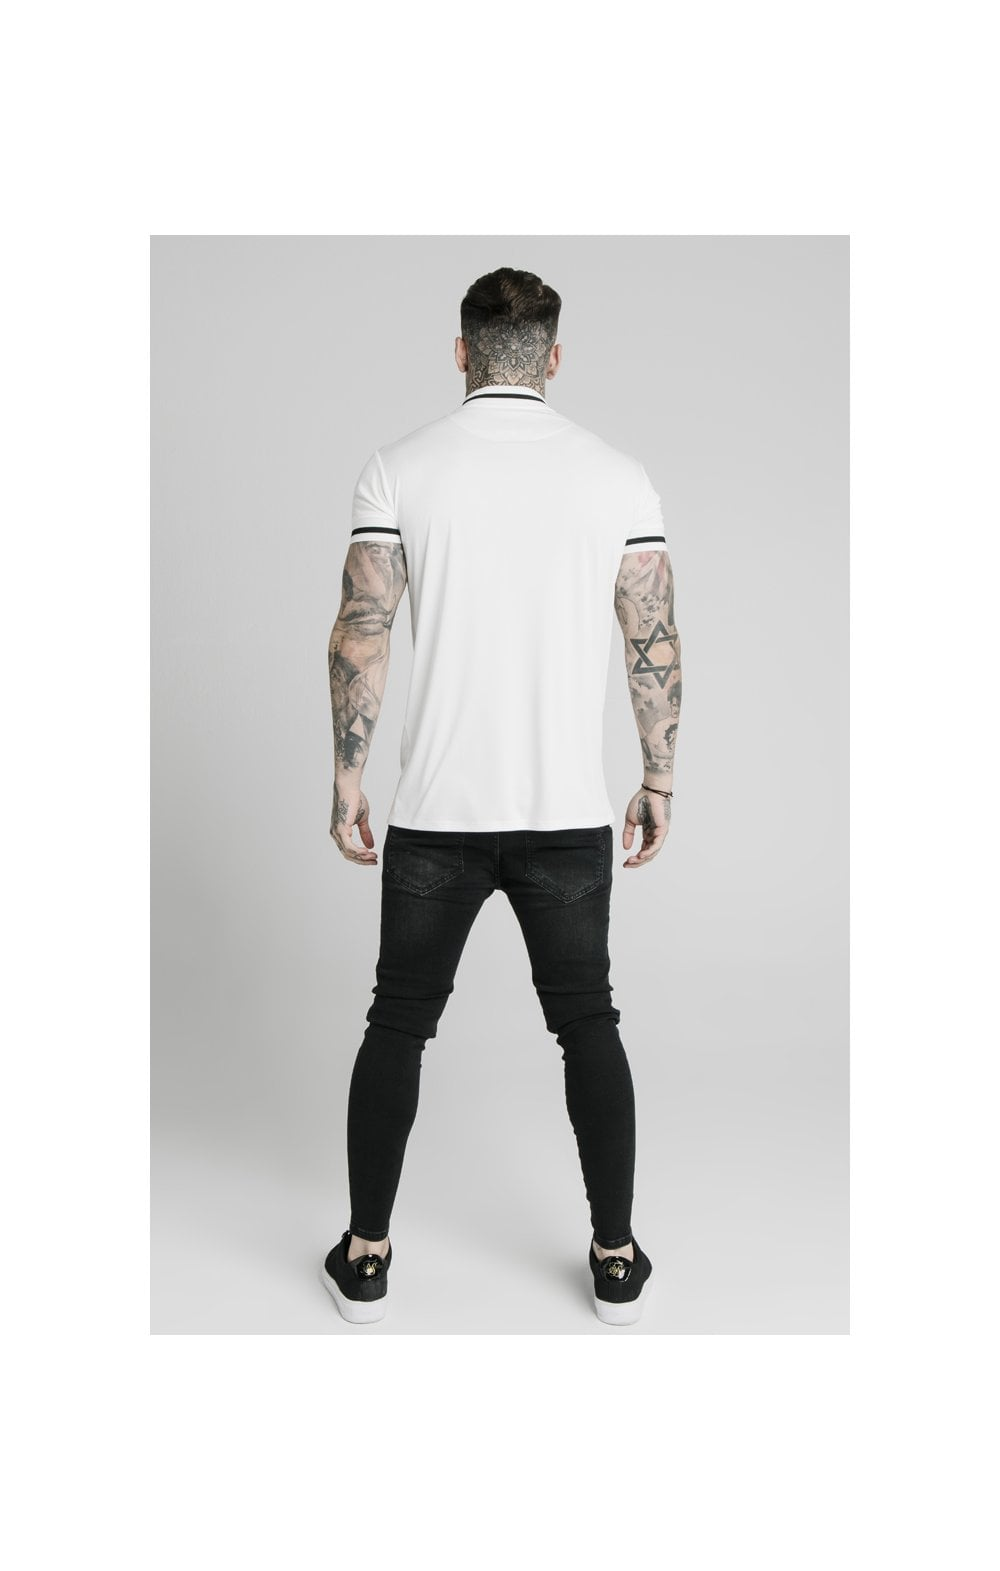 SikSilk S/S Poly Rib Collar Tee - Off White (4)